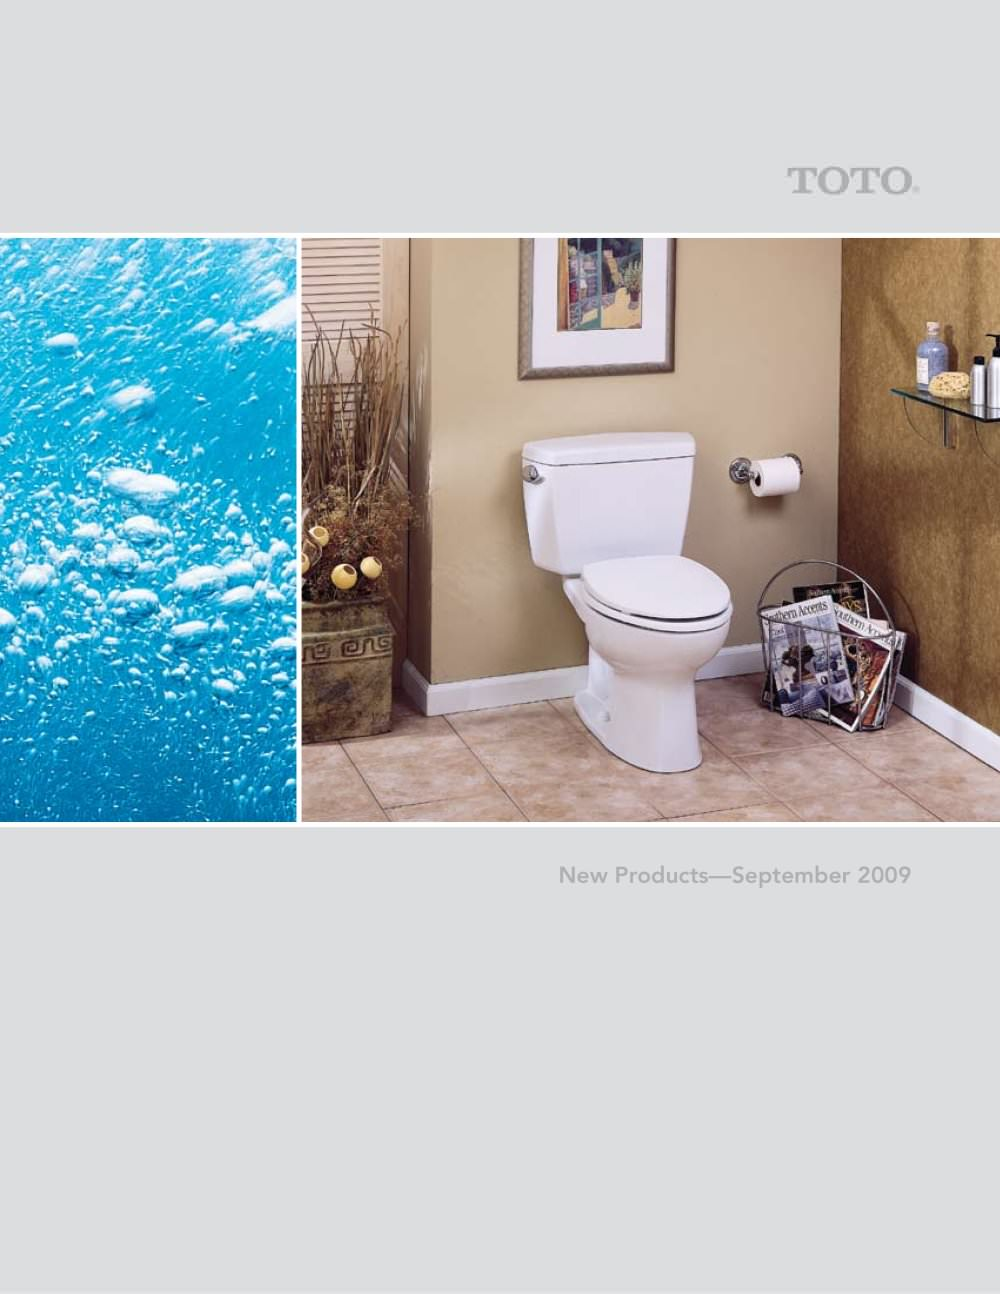 New Products September 2009 - Toto - PDF Catalogues   Documentation ...